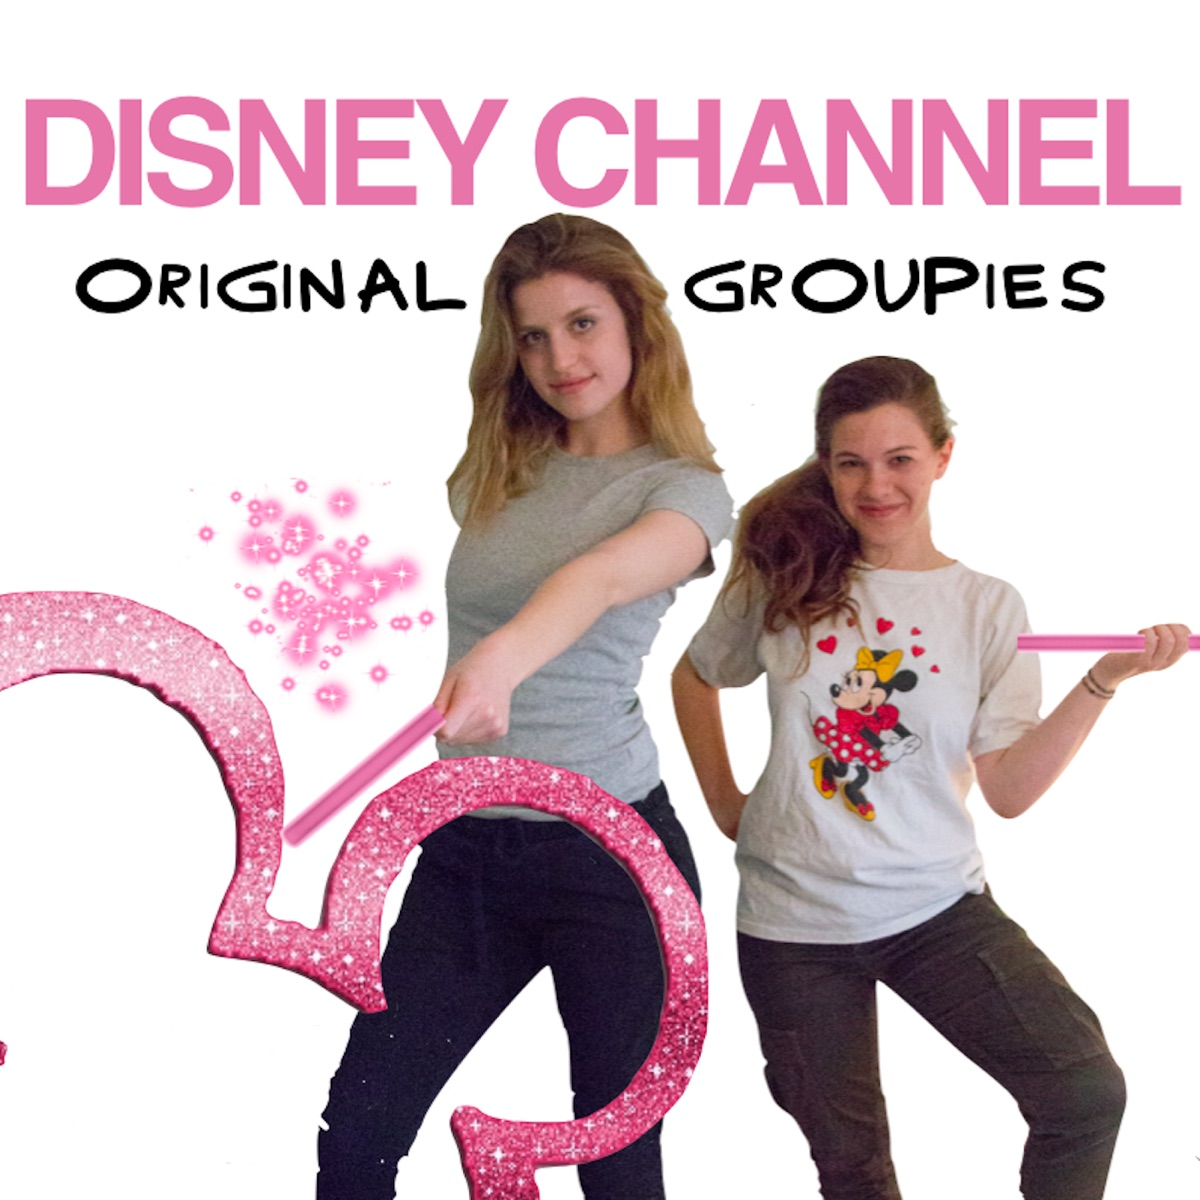 Disney Channel Original Groupies Podcast Podtail